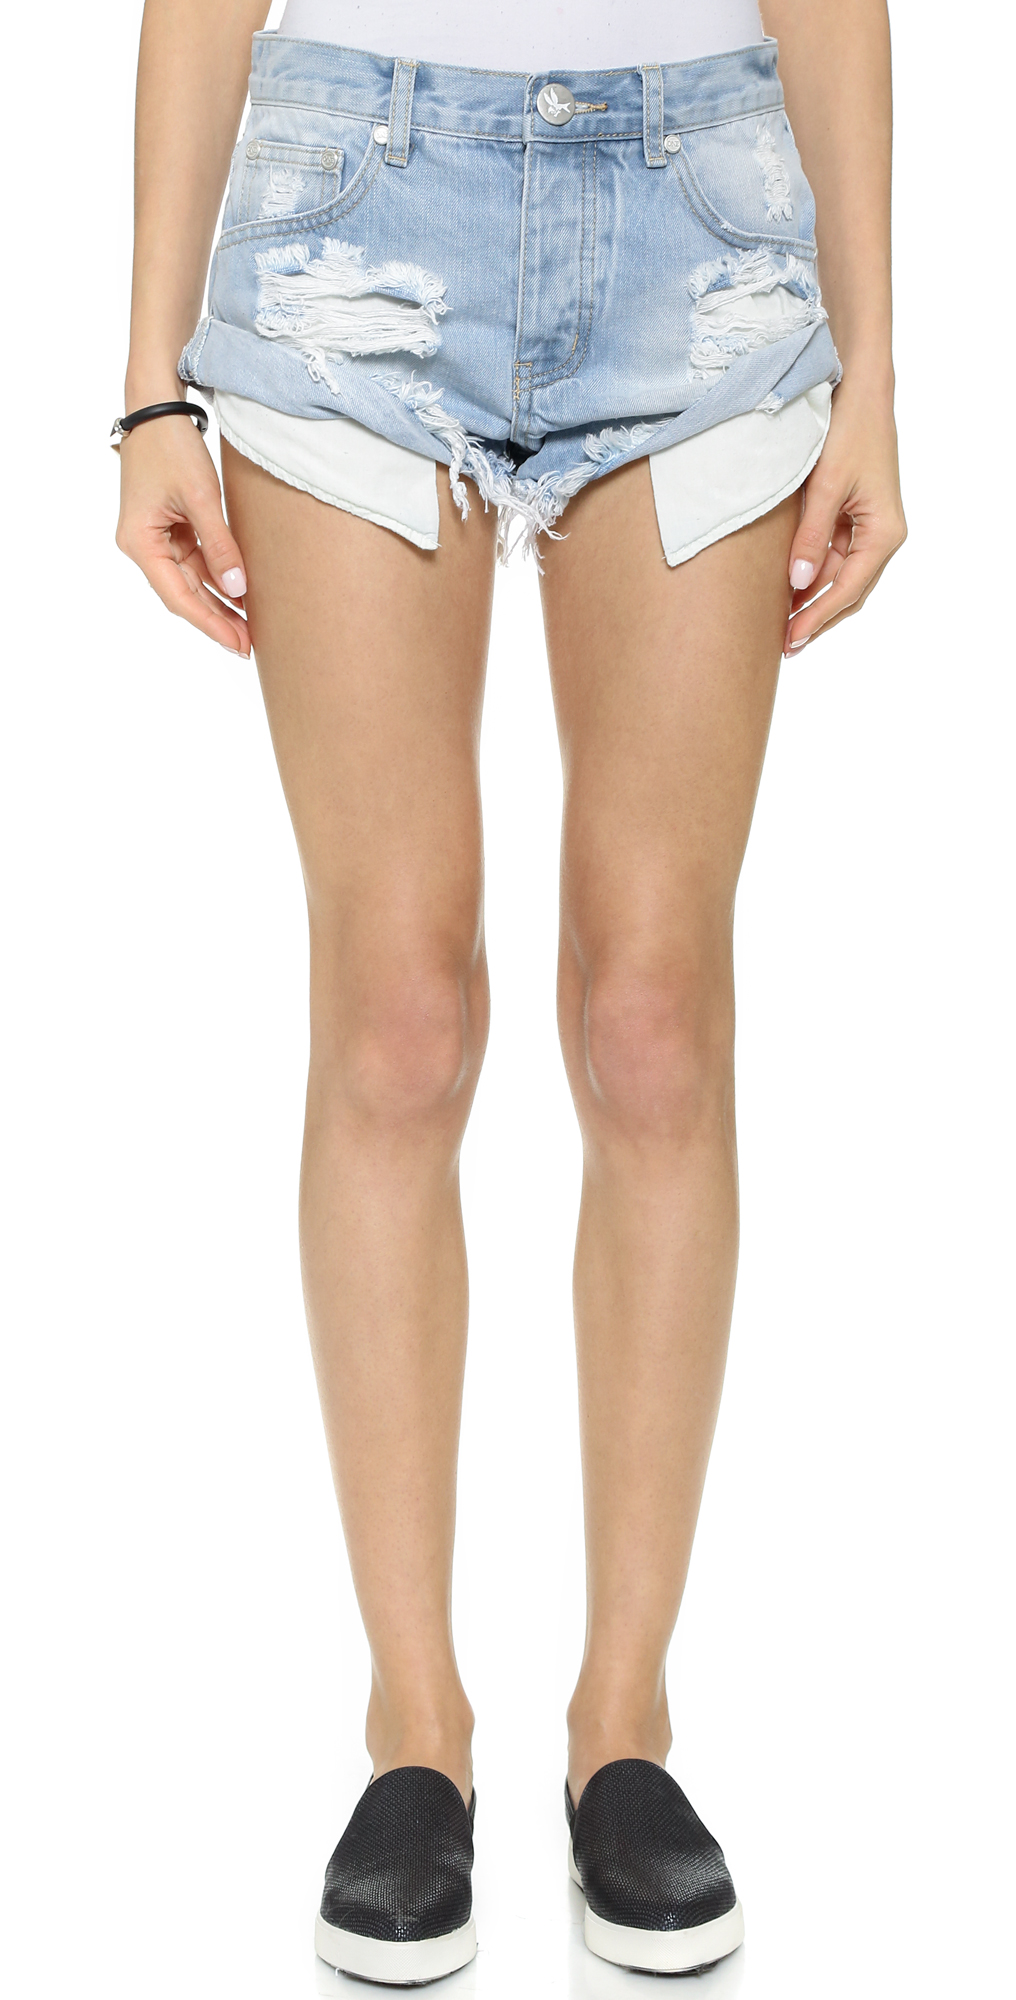 Wilde Bandits Shorts One Teaspoon